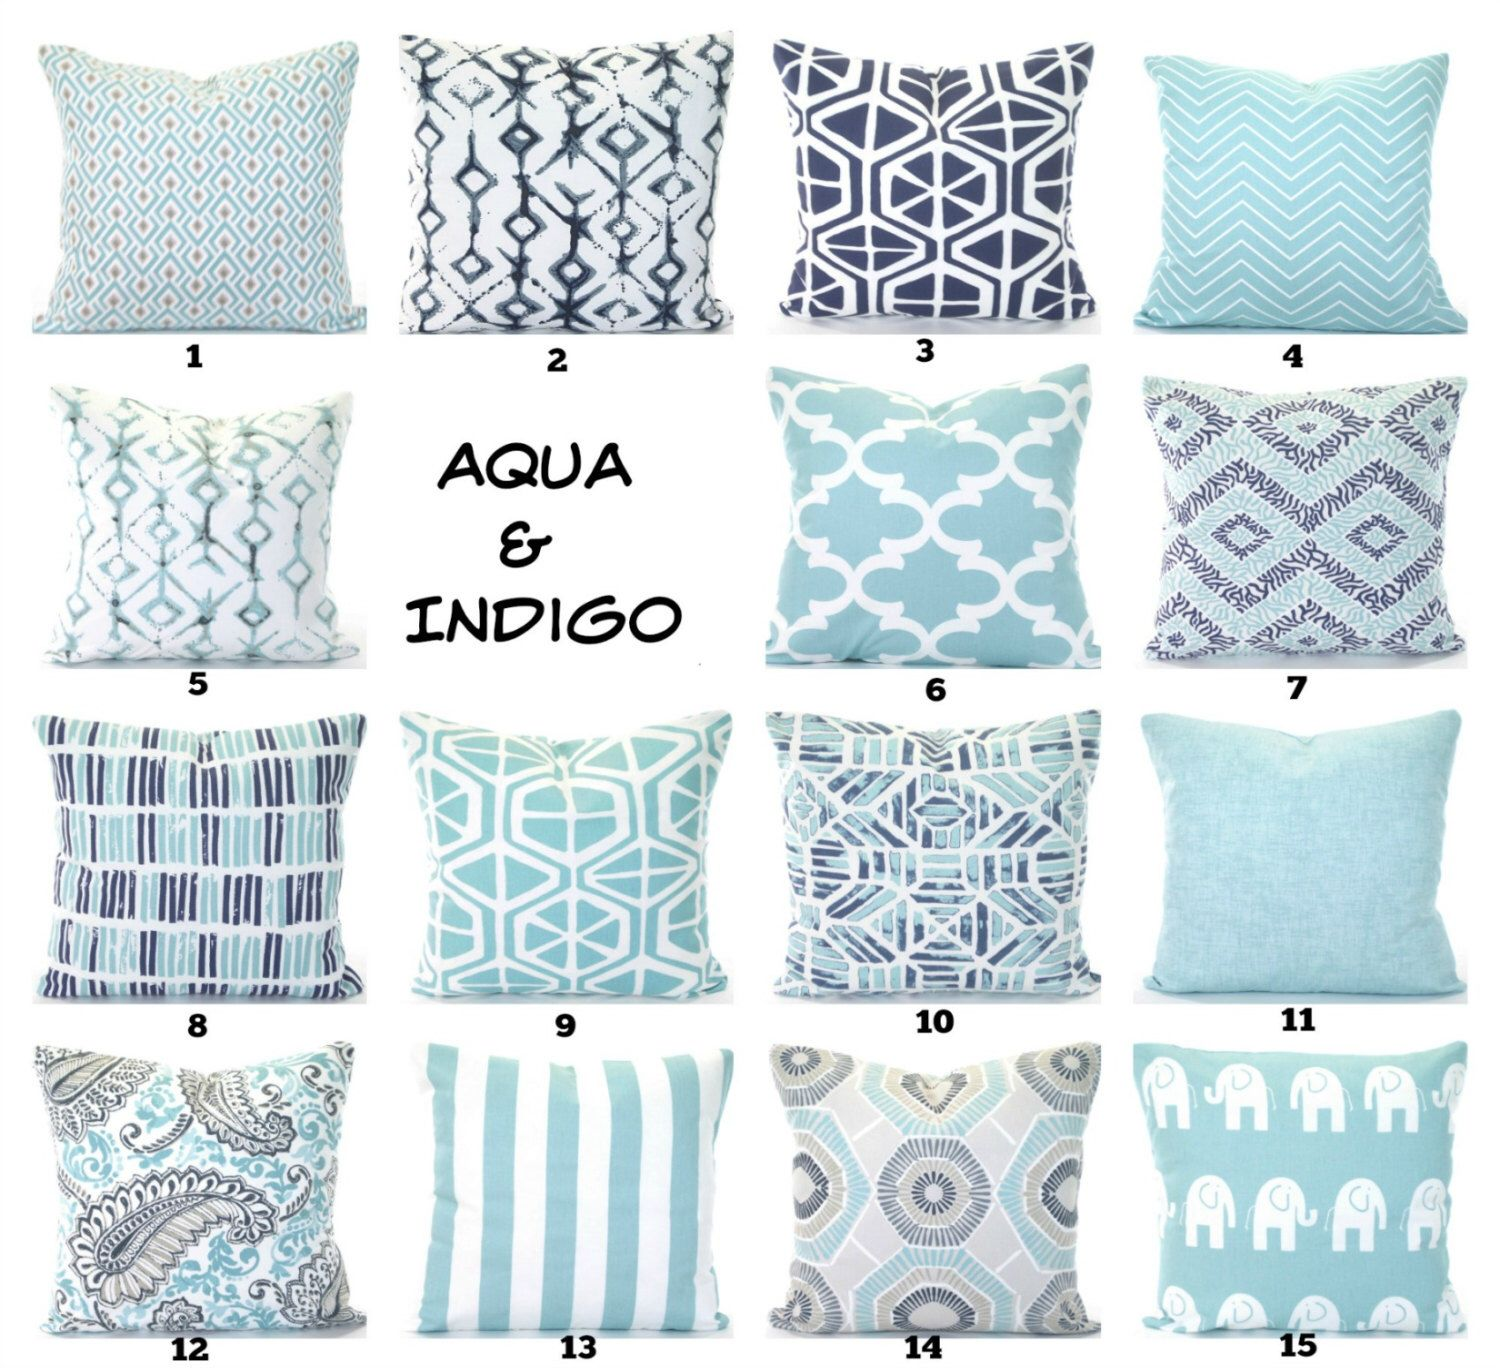 Aqua Navy Pillow Covers Cushions Decorative Throw Pillows Pastel Aqua Indigo Navy Taupe Whit Blue Throw Pillows Throw Pillow Cover Navy Turquoise Throw Pillows